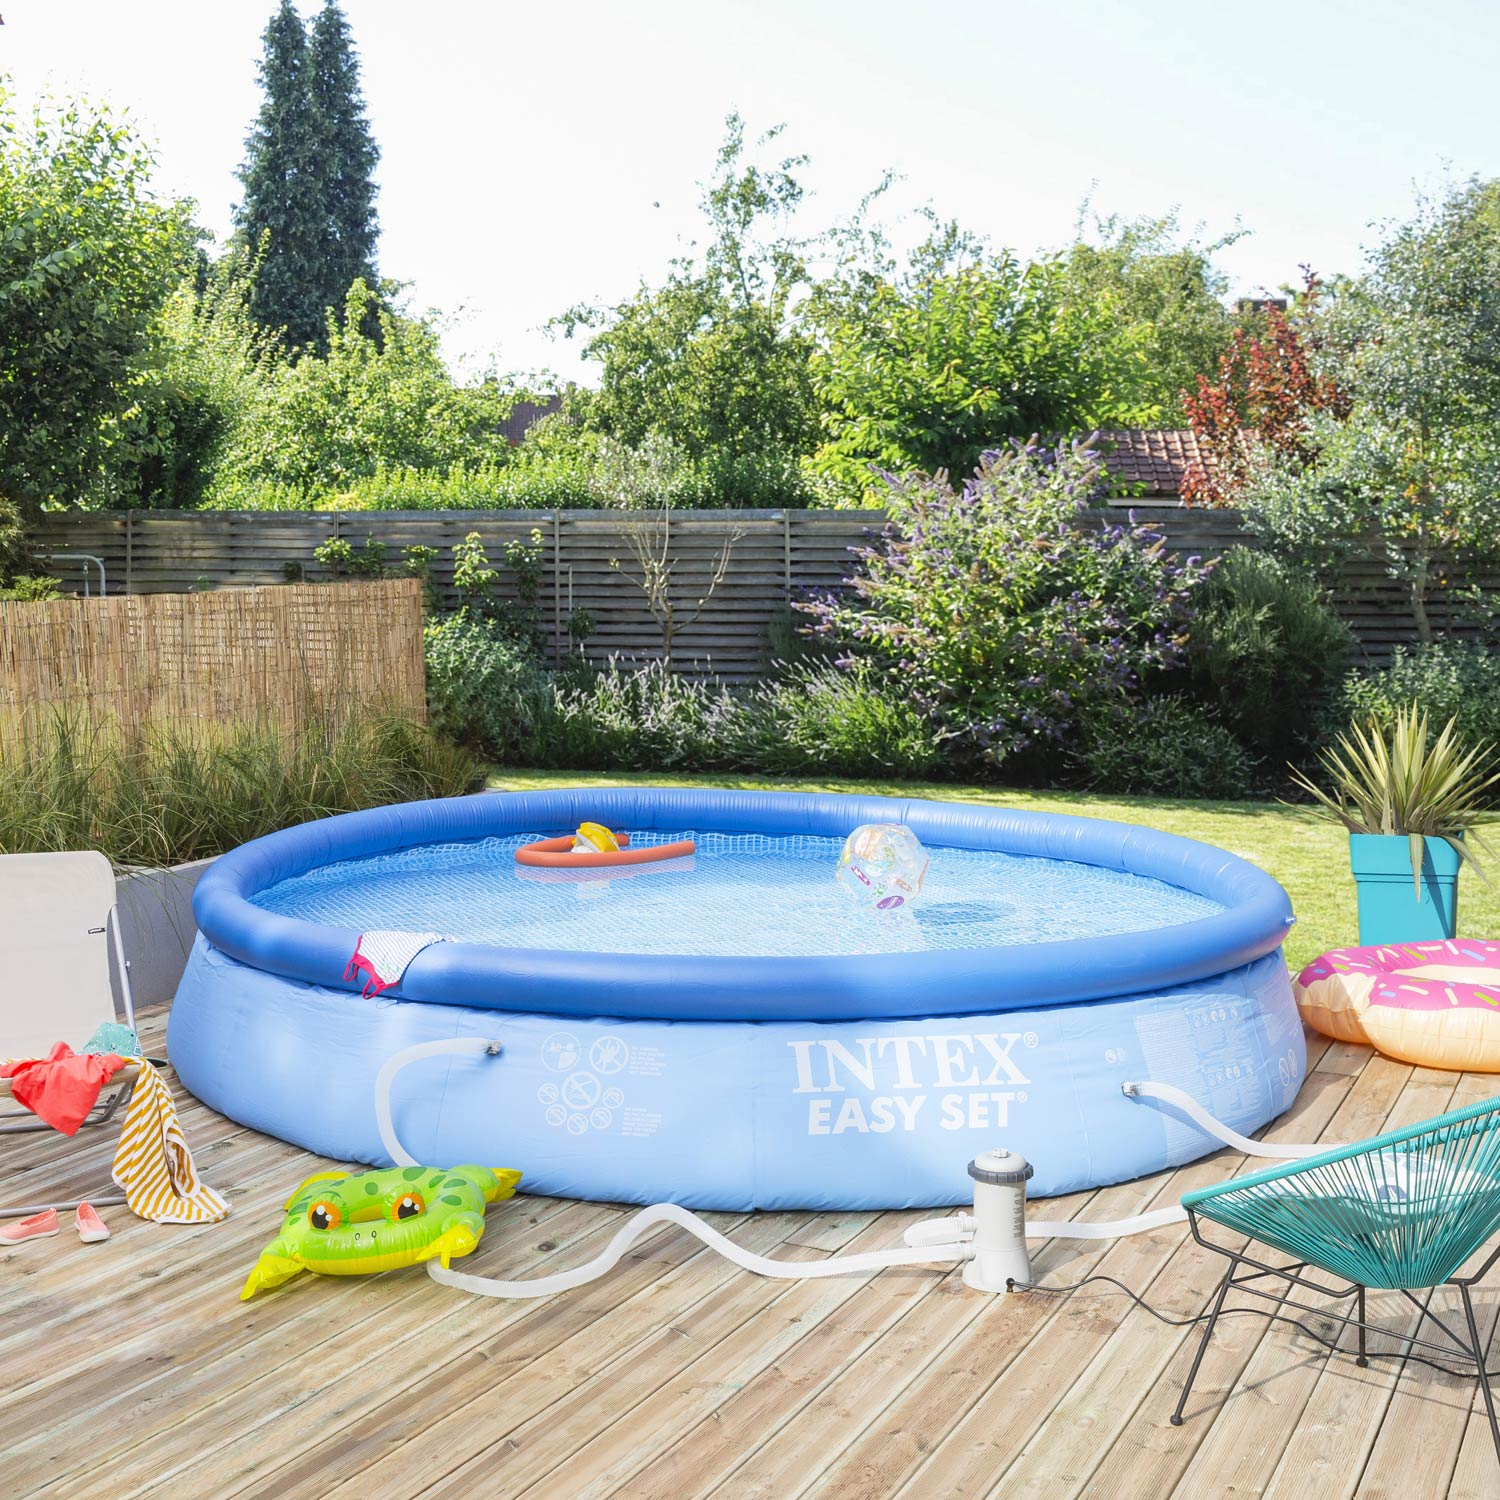 Piscine hors sol autoportante gonflable easy set intex - Spa gonflable intex pas cher ...